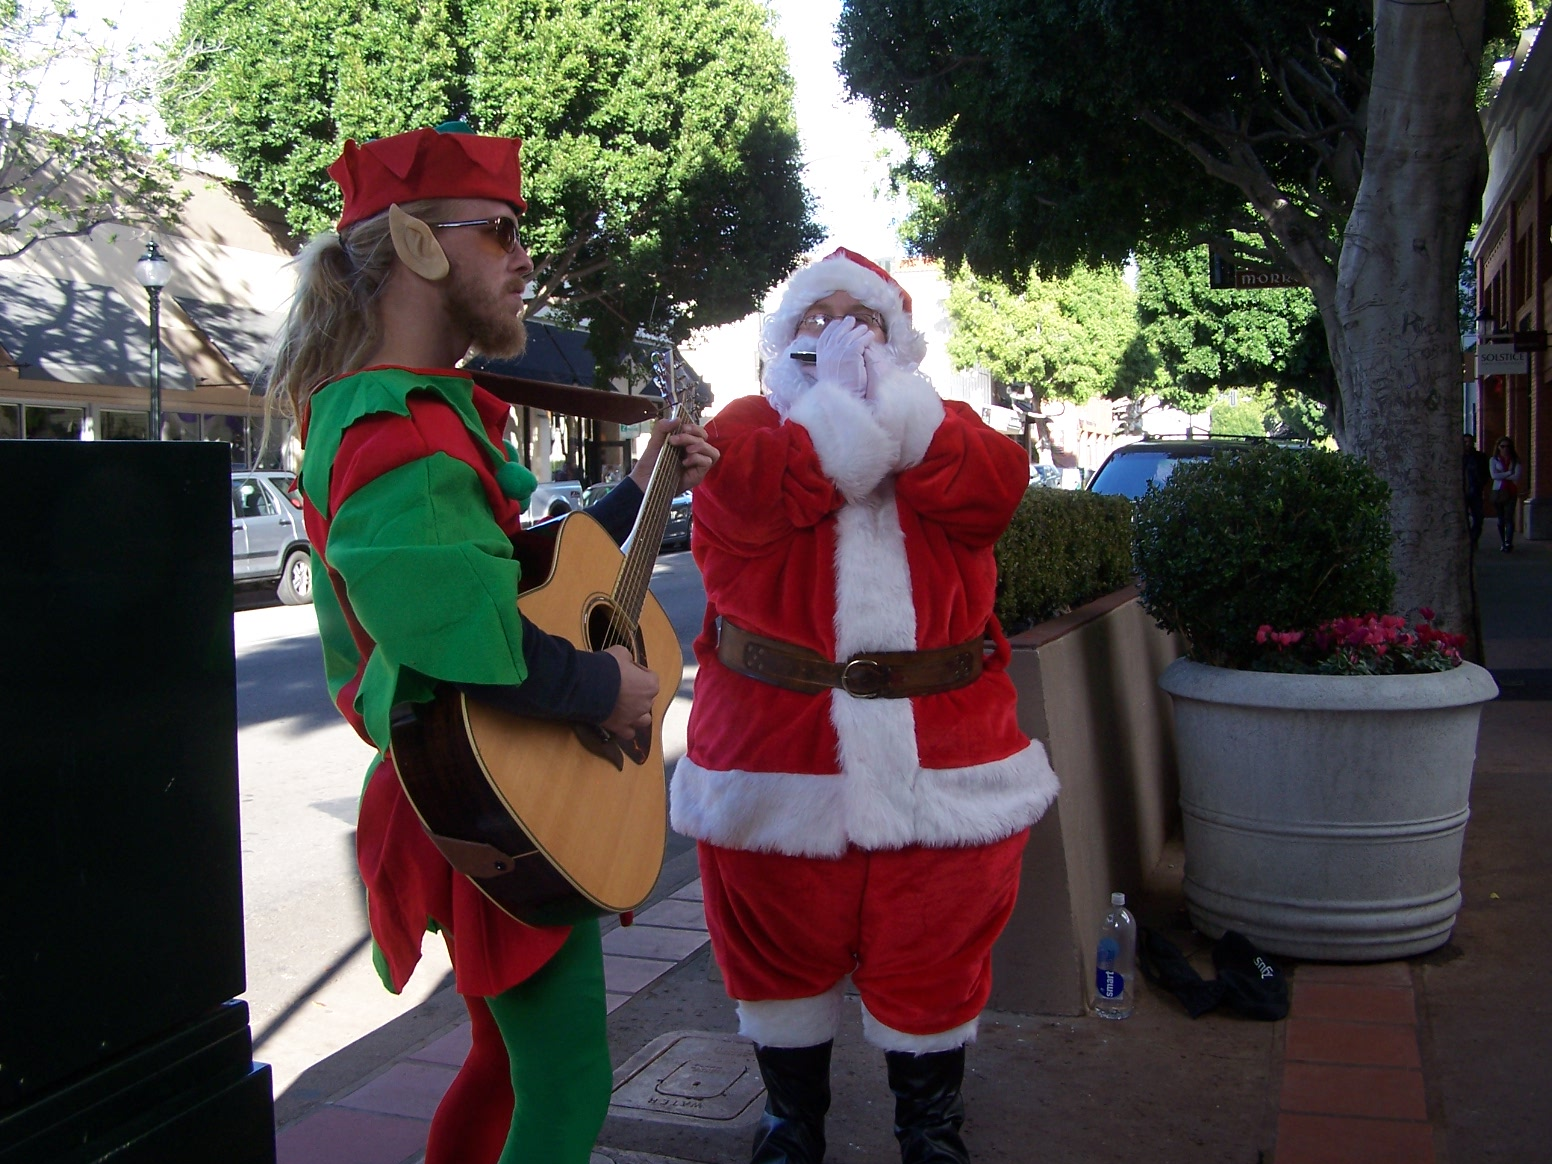 The Grooviest Santa and Elf Around